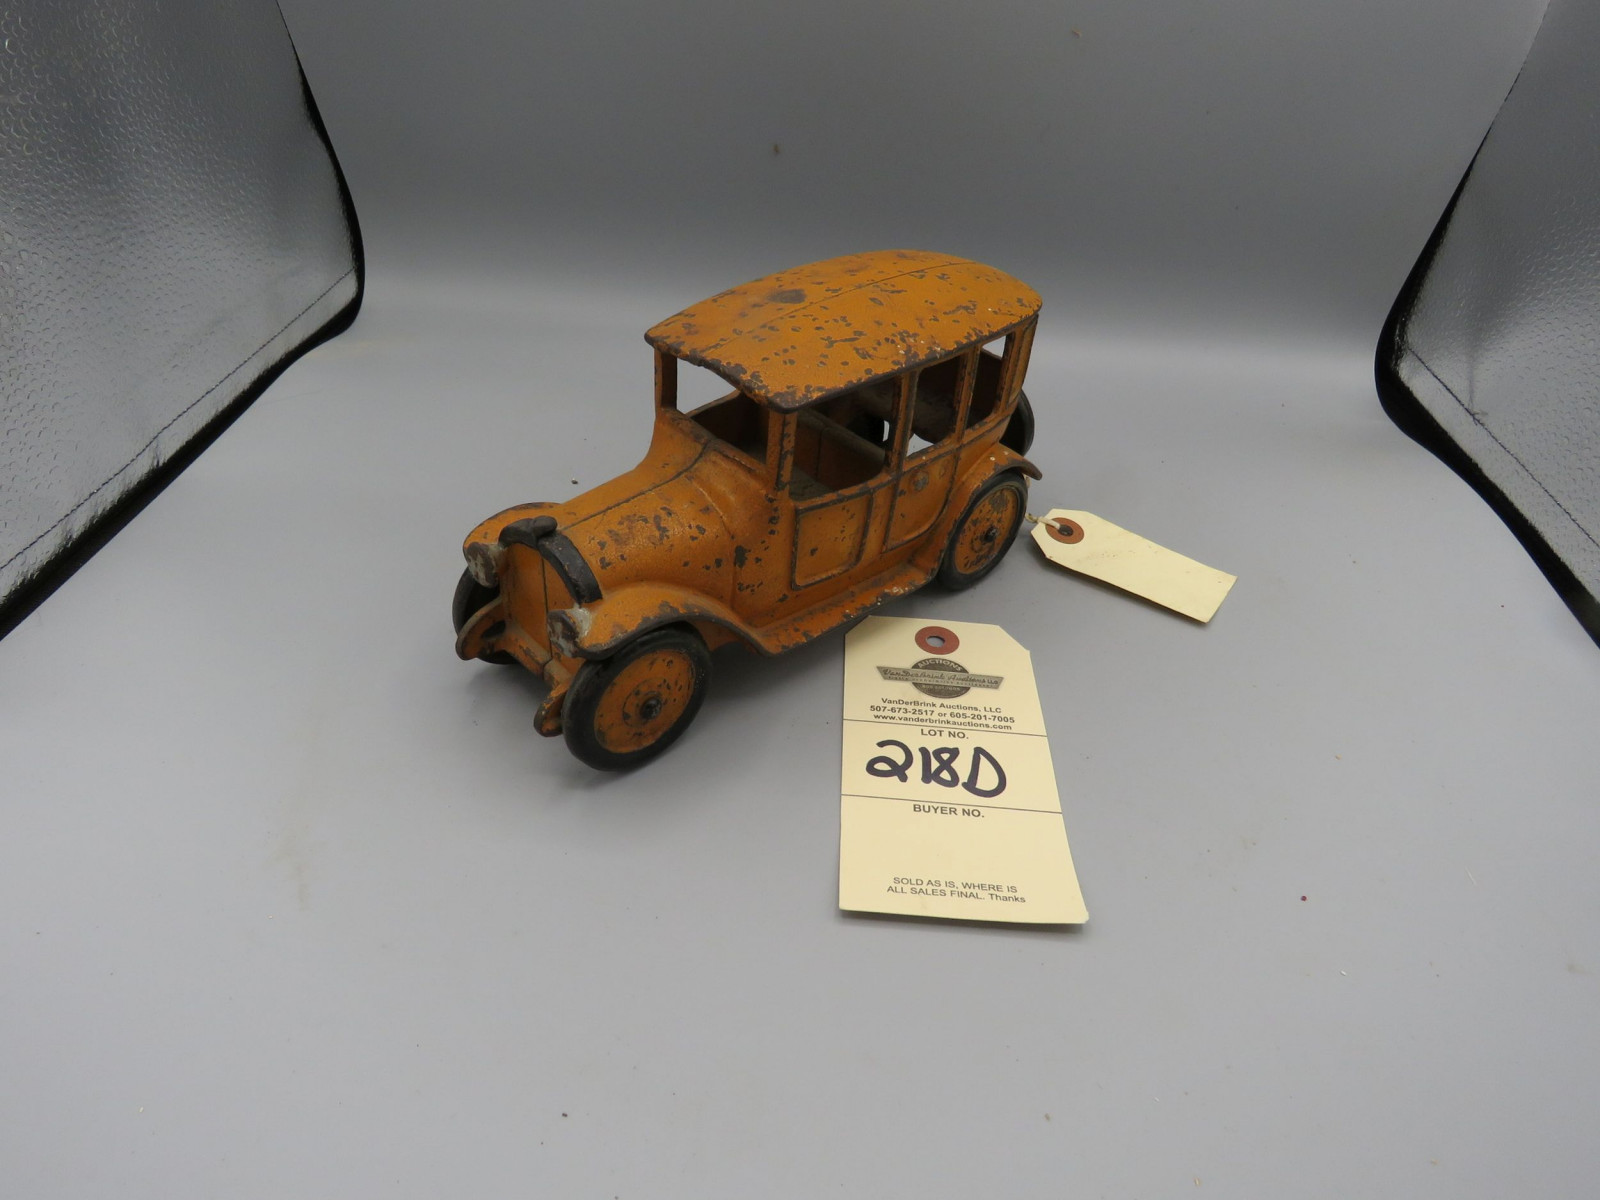 Arcade Cast iron Sedan @1923 Approx. 6 inches - Image 1